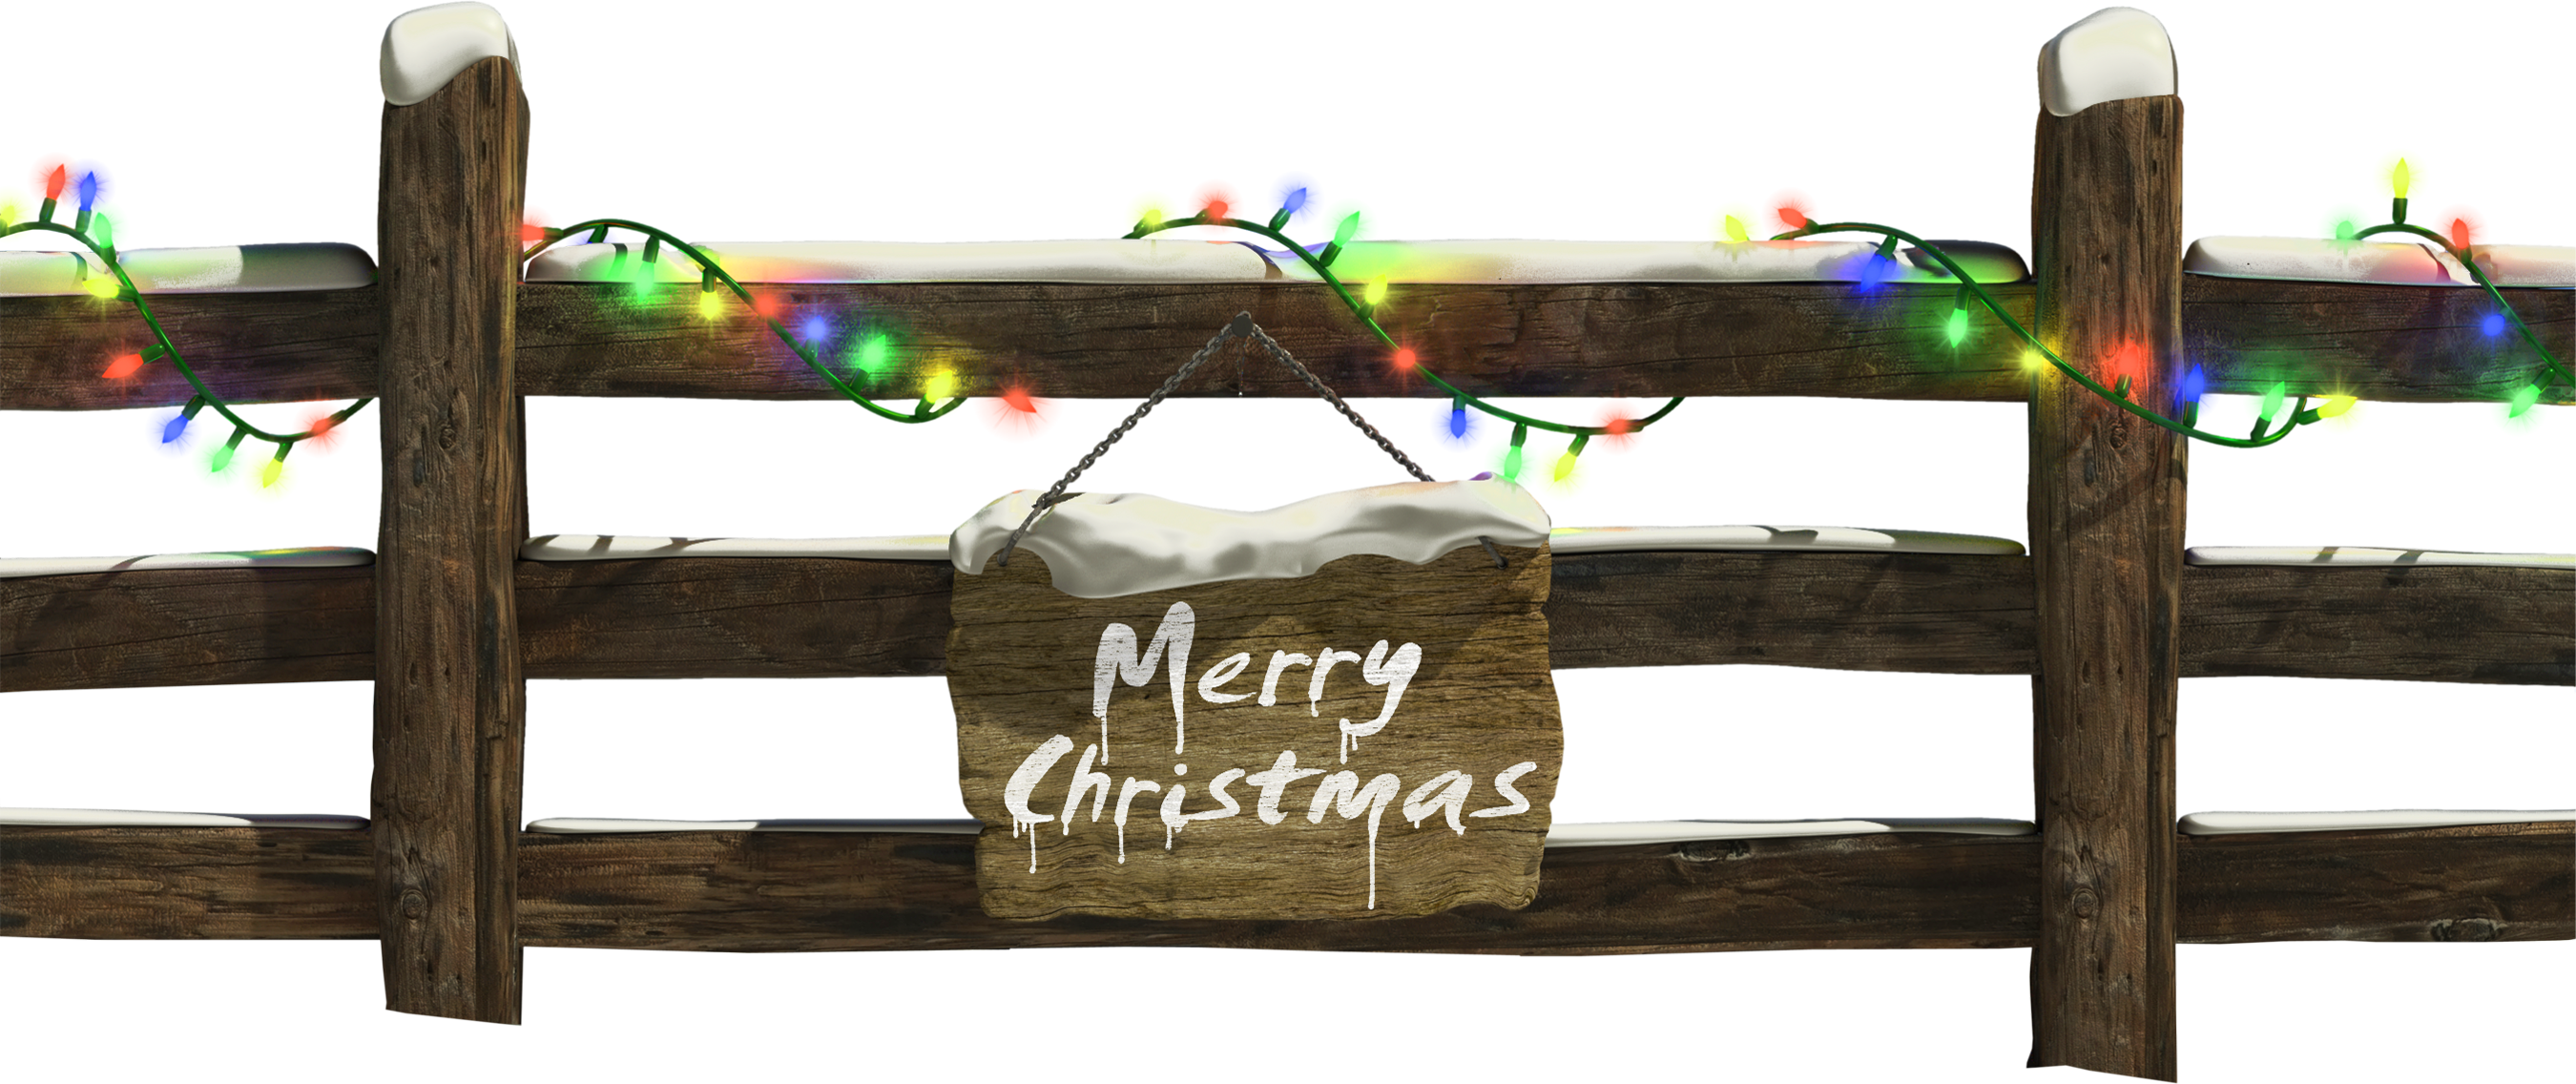 Christmas with lights gallery. Fence clipart winter